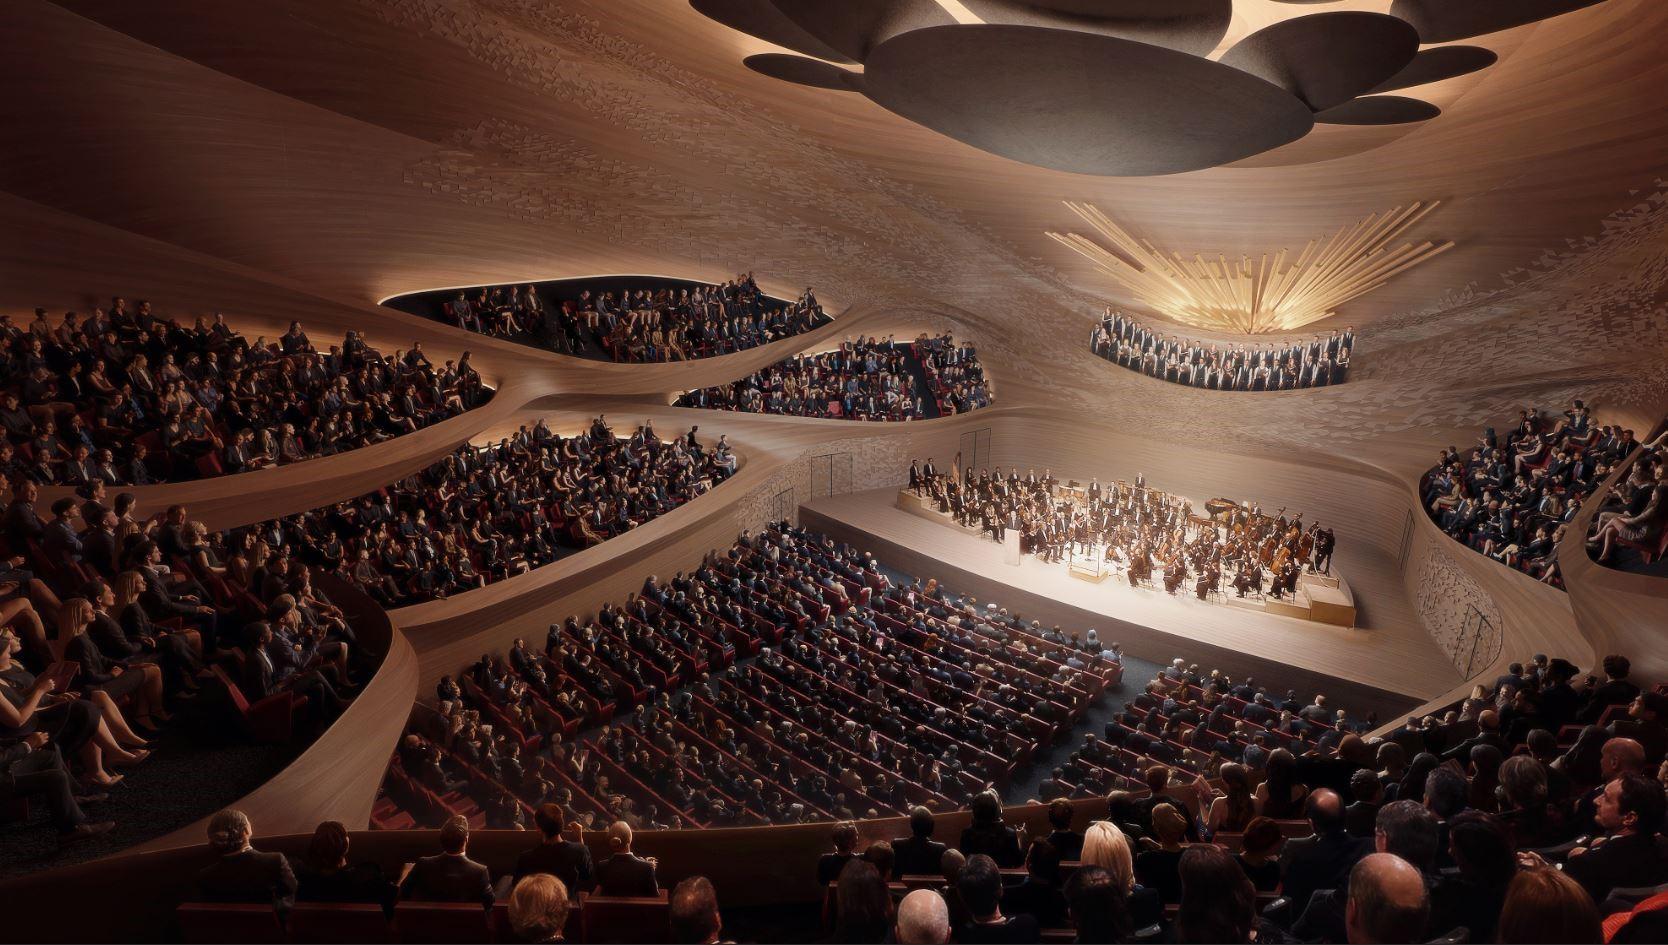 Marshall Day working with Zaha Hadid Architects to design Sverdlovsk Philharmonic Concert Hall